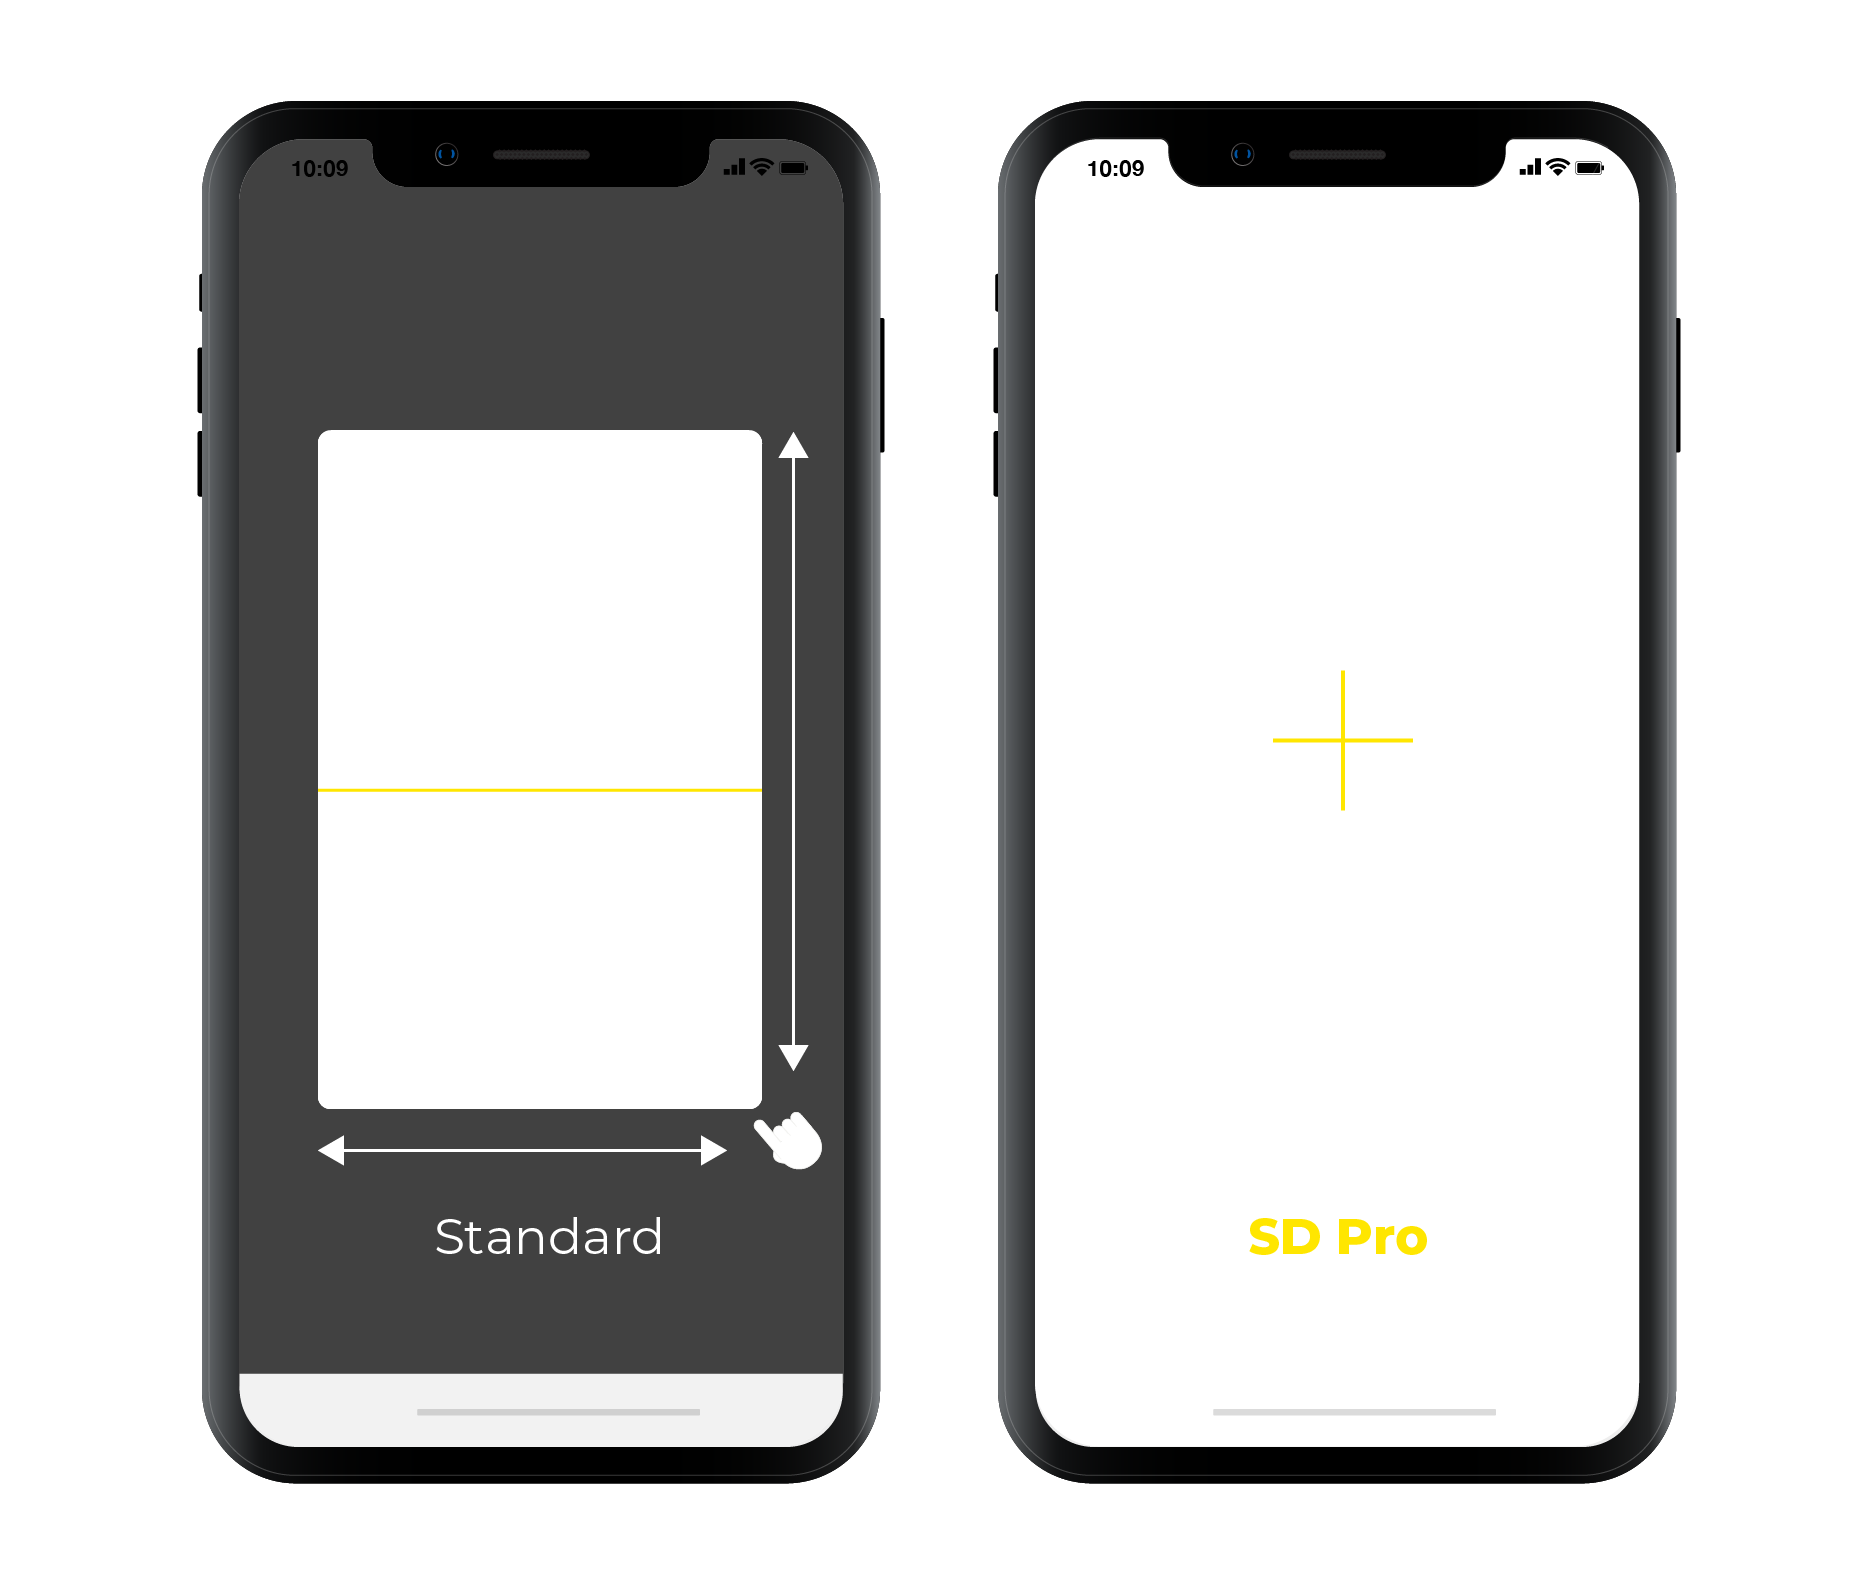 SD Pro Scan Engine Compared to Standard